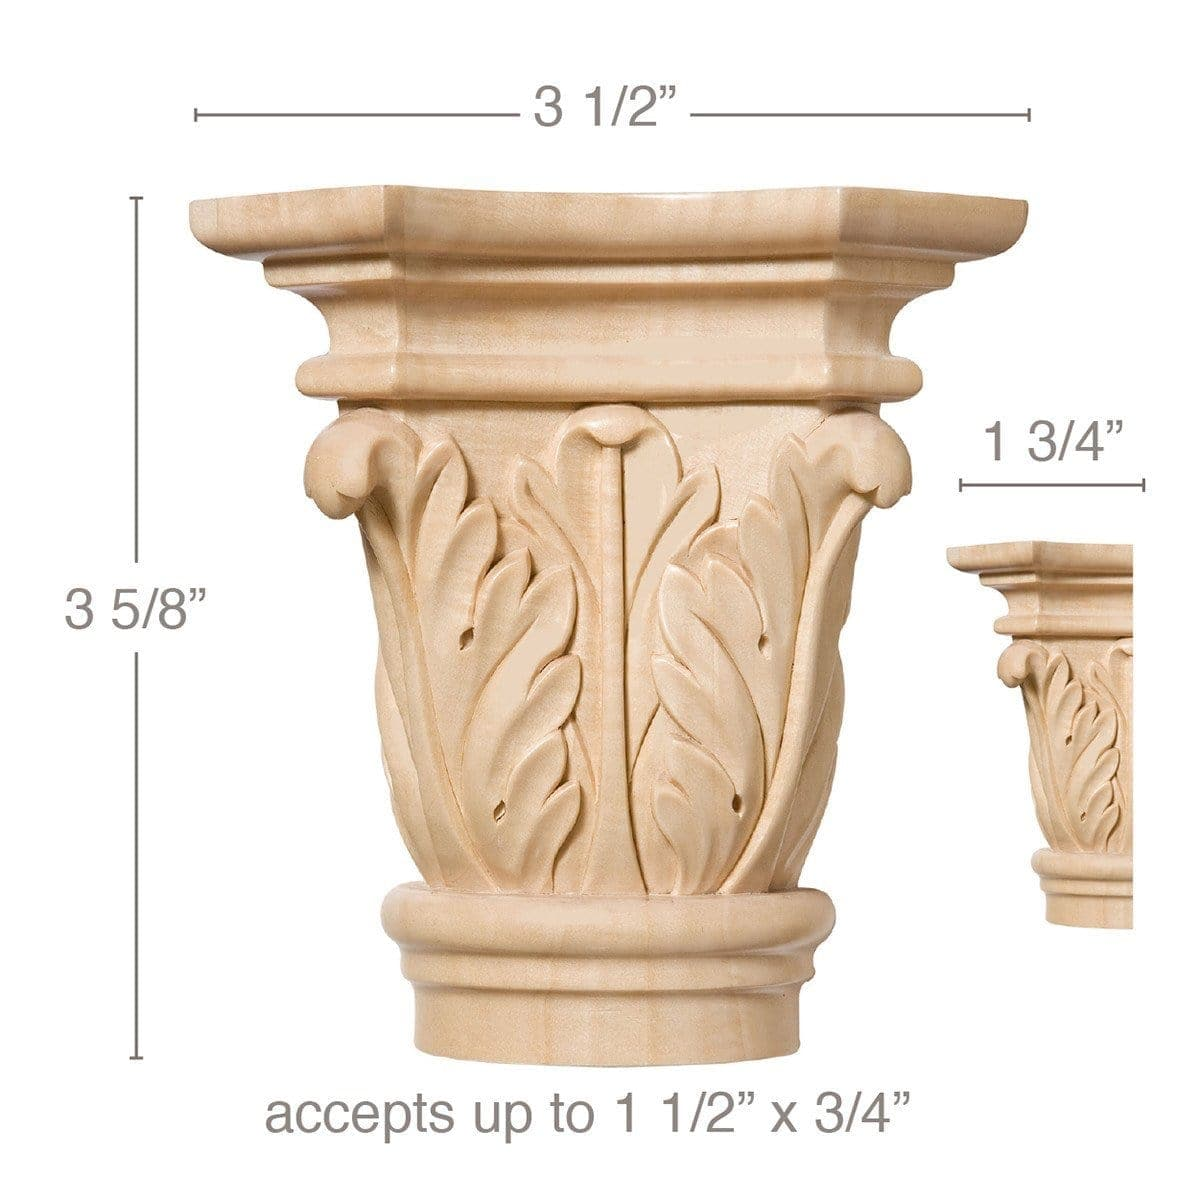 "Medium Acanthus Capital, 3 1/2''w x 3 5/8''h x 1 3/4''d, Sold 2 per package, (accepts up to 1 1/2""w x 3/4""d)"